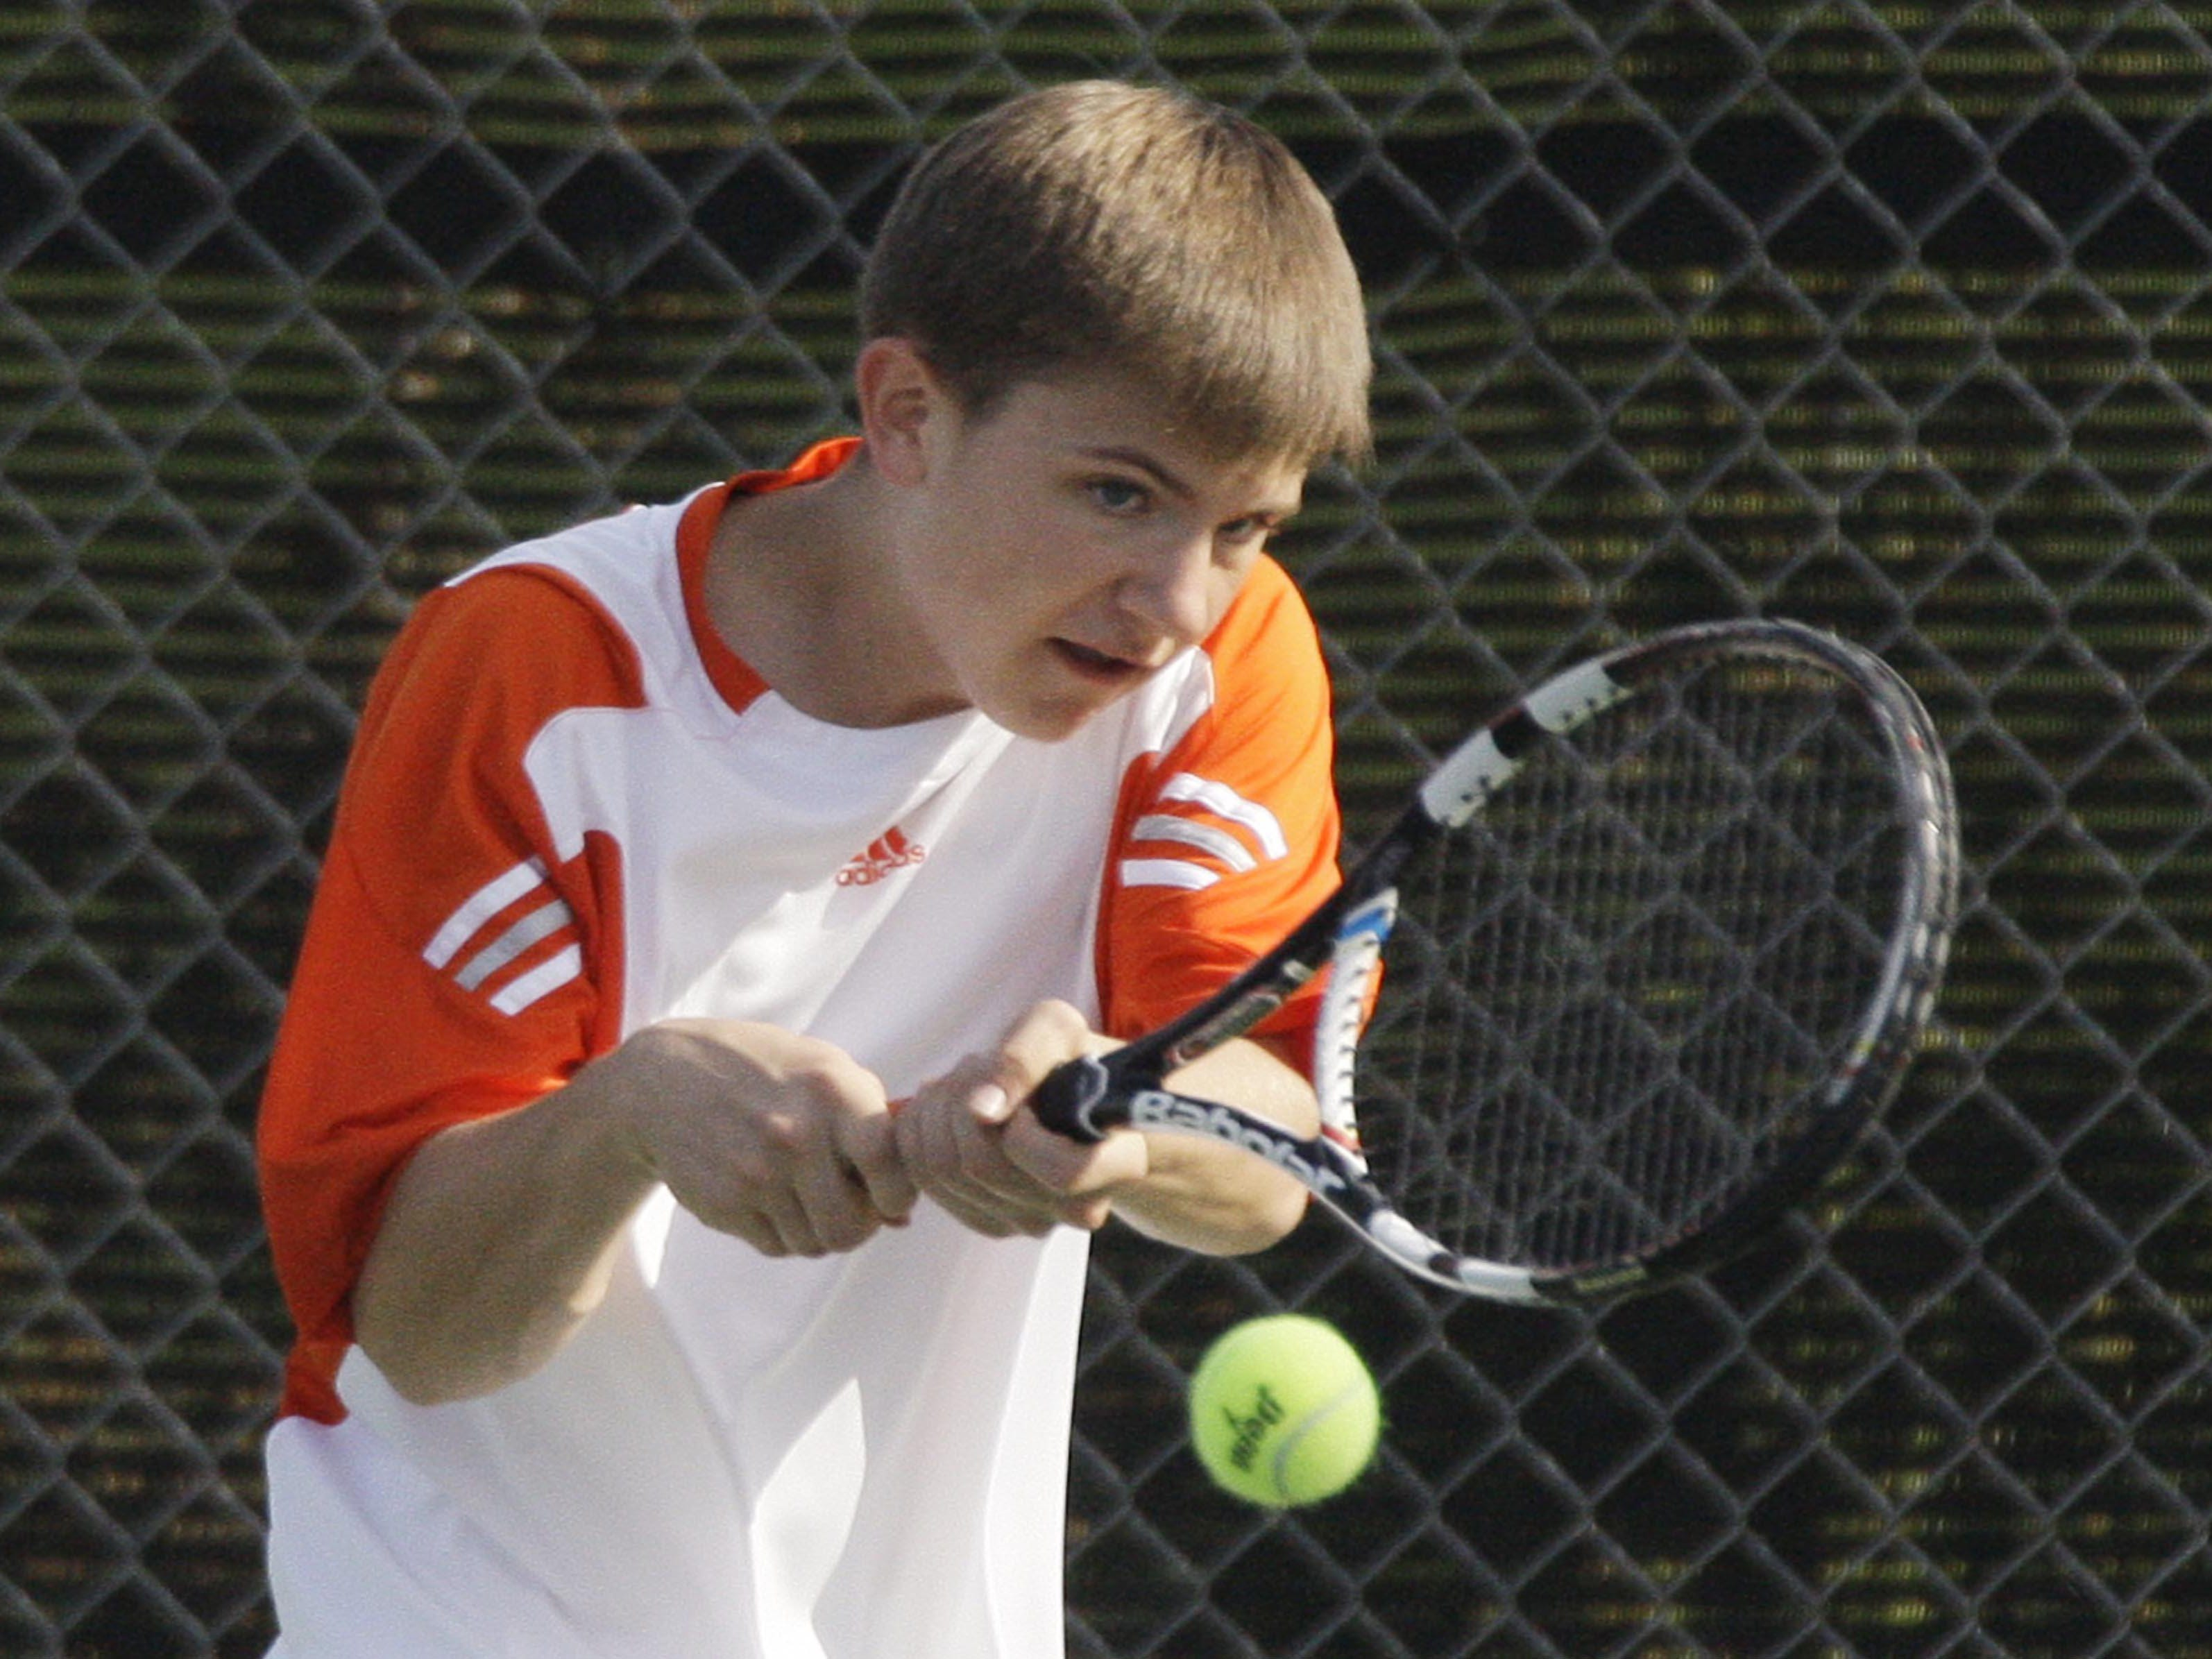 Plymouth junior Matt Primozic will be one of nine area tennis players competing at the WIAA State Tennis Tournament.